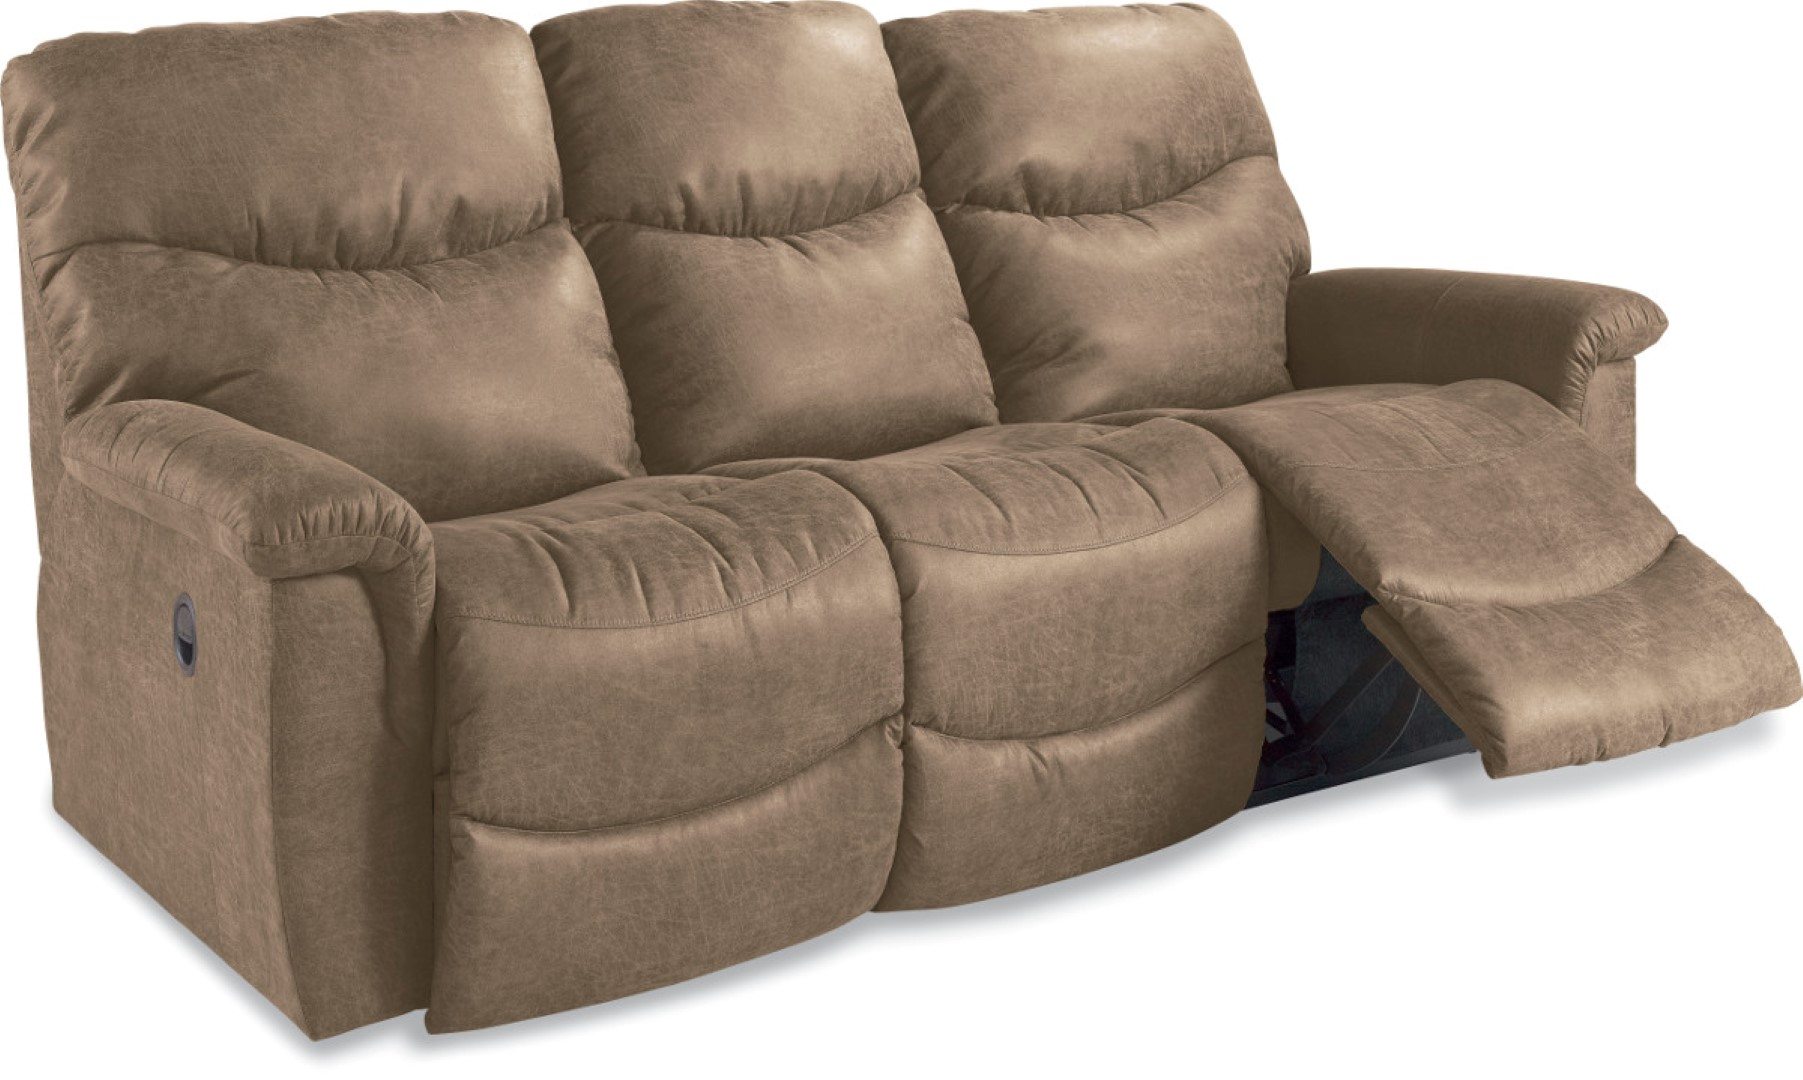 La Z Boy James Reclining Sofa Town & Country Furniture